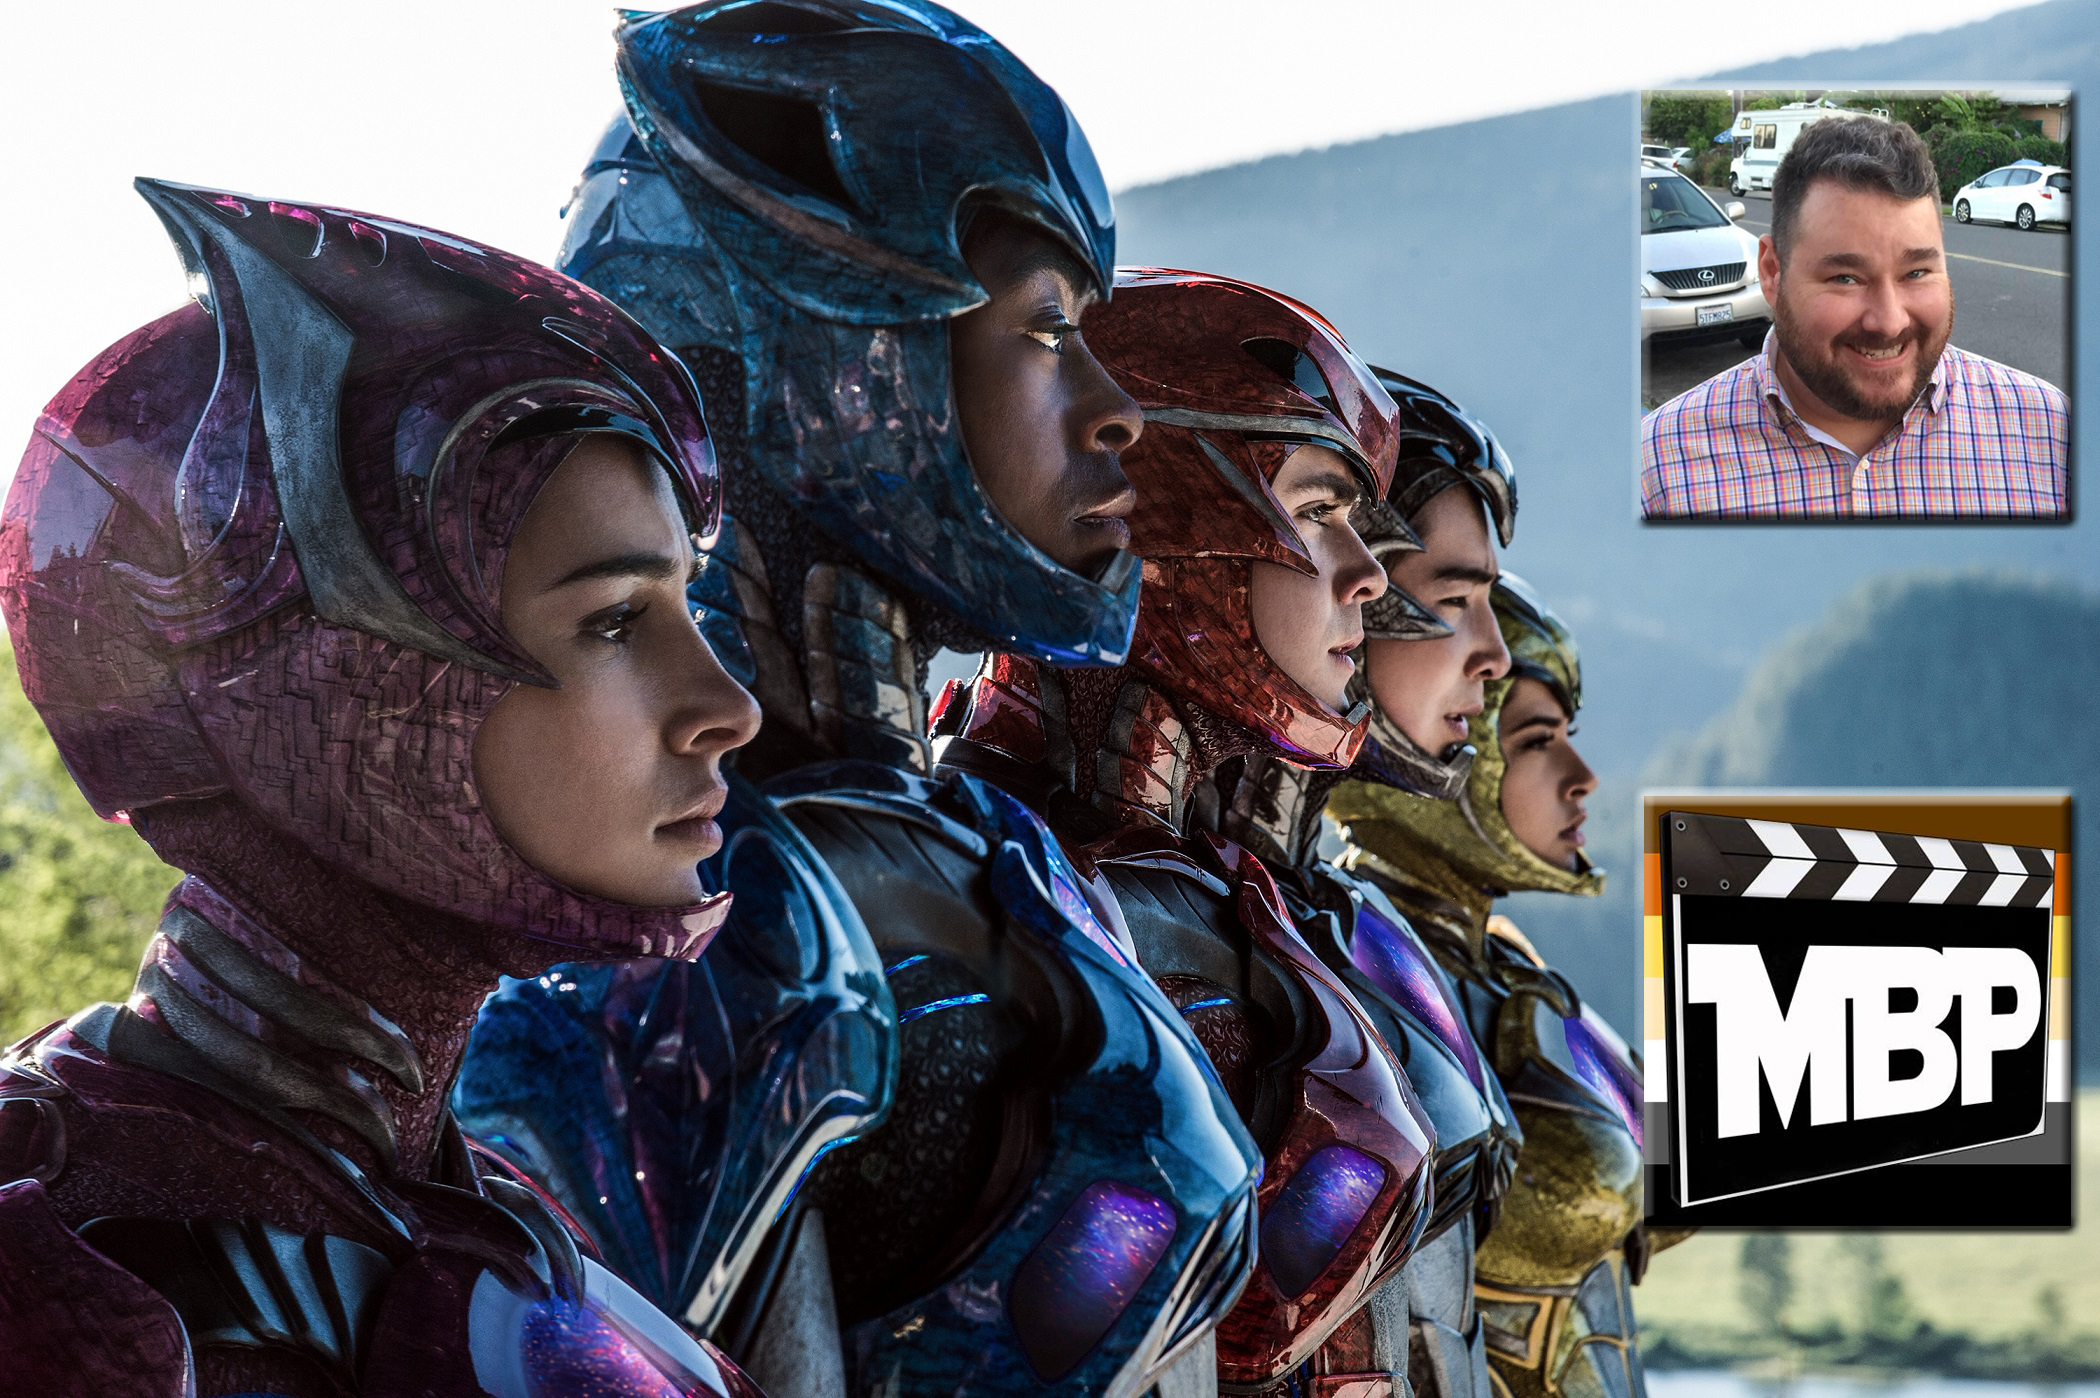 MBP e226 - 'Power Rangers' (3/31/17)    It's Morphin' Time! This week, the bears are joined by hunky guest host Hadrian McQuaig for a spirited review of the new 'Power Rangers' reboot. Click through to listen!